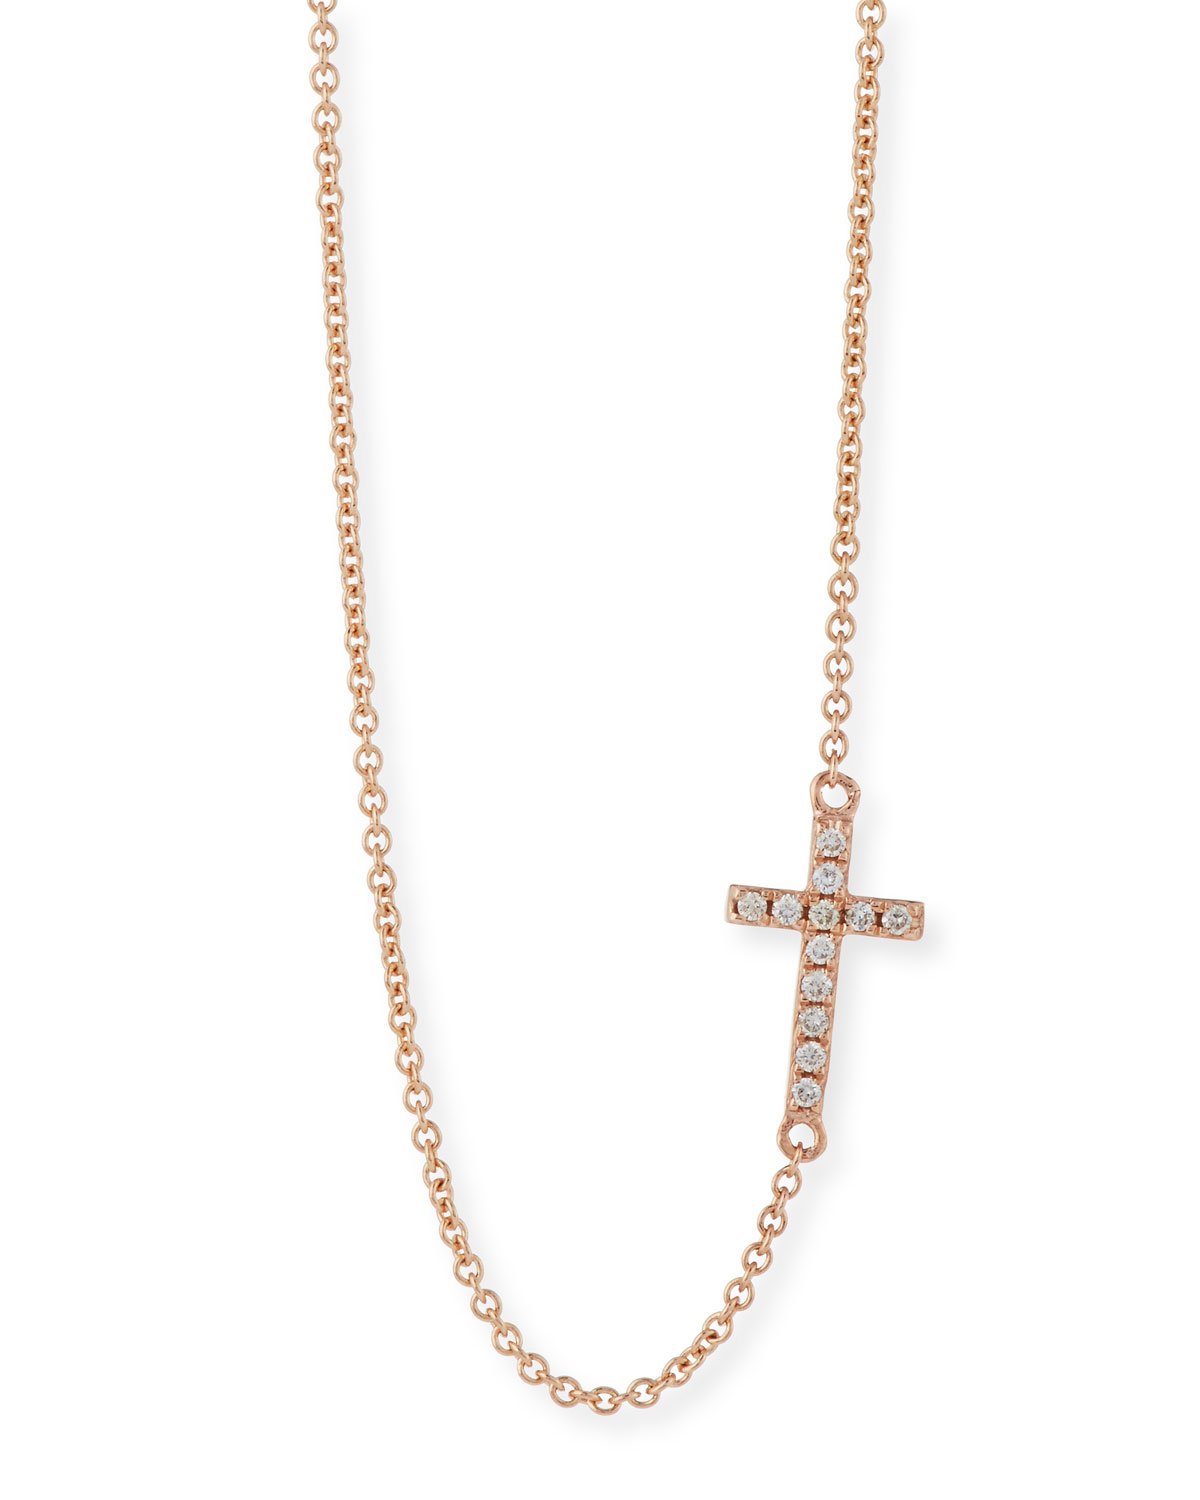 Pave diamond cross necklace neiman marcus quick look sydney evan small 14k rose gold pave diamond cross necklace aloadofball Image collections